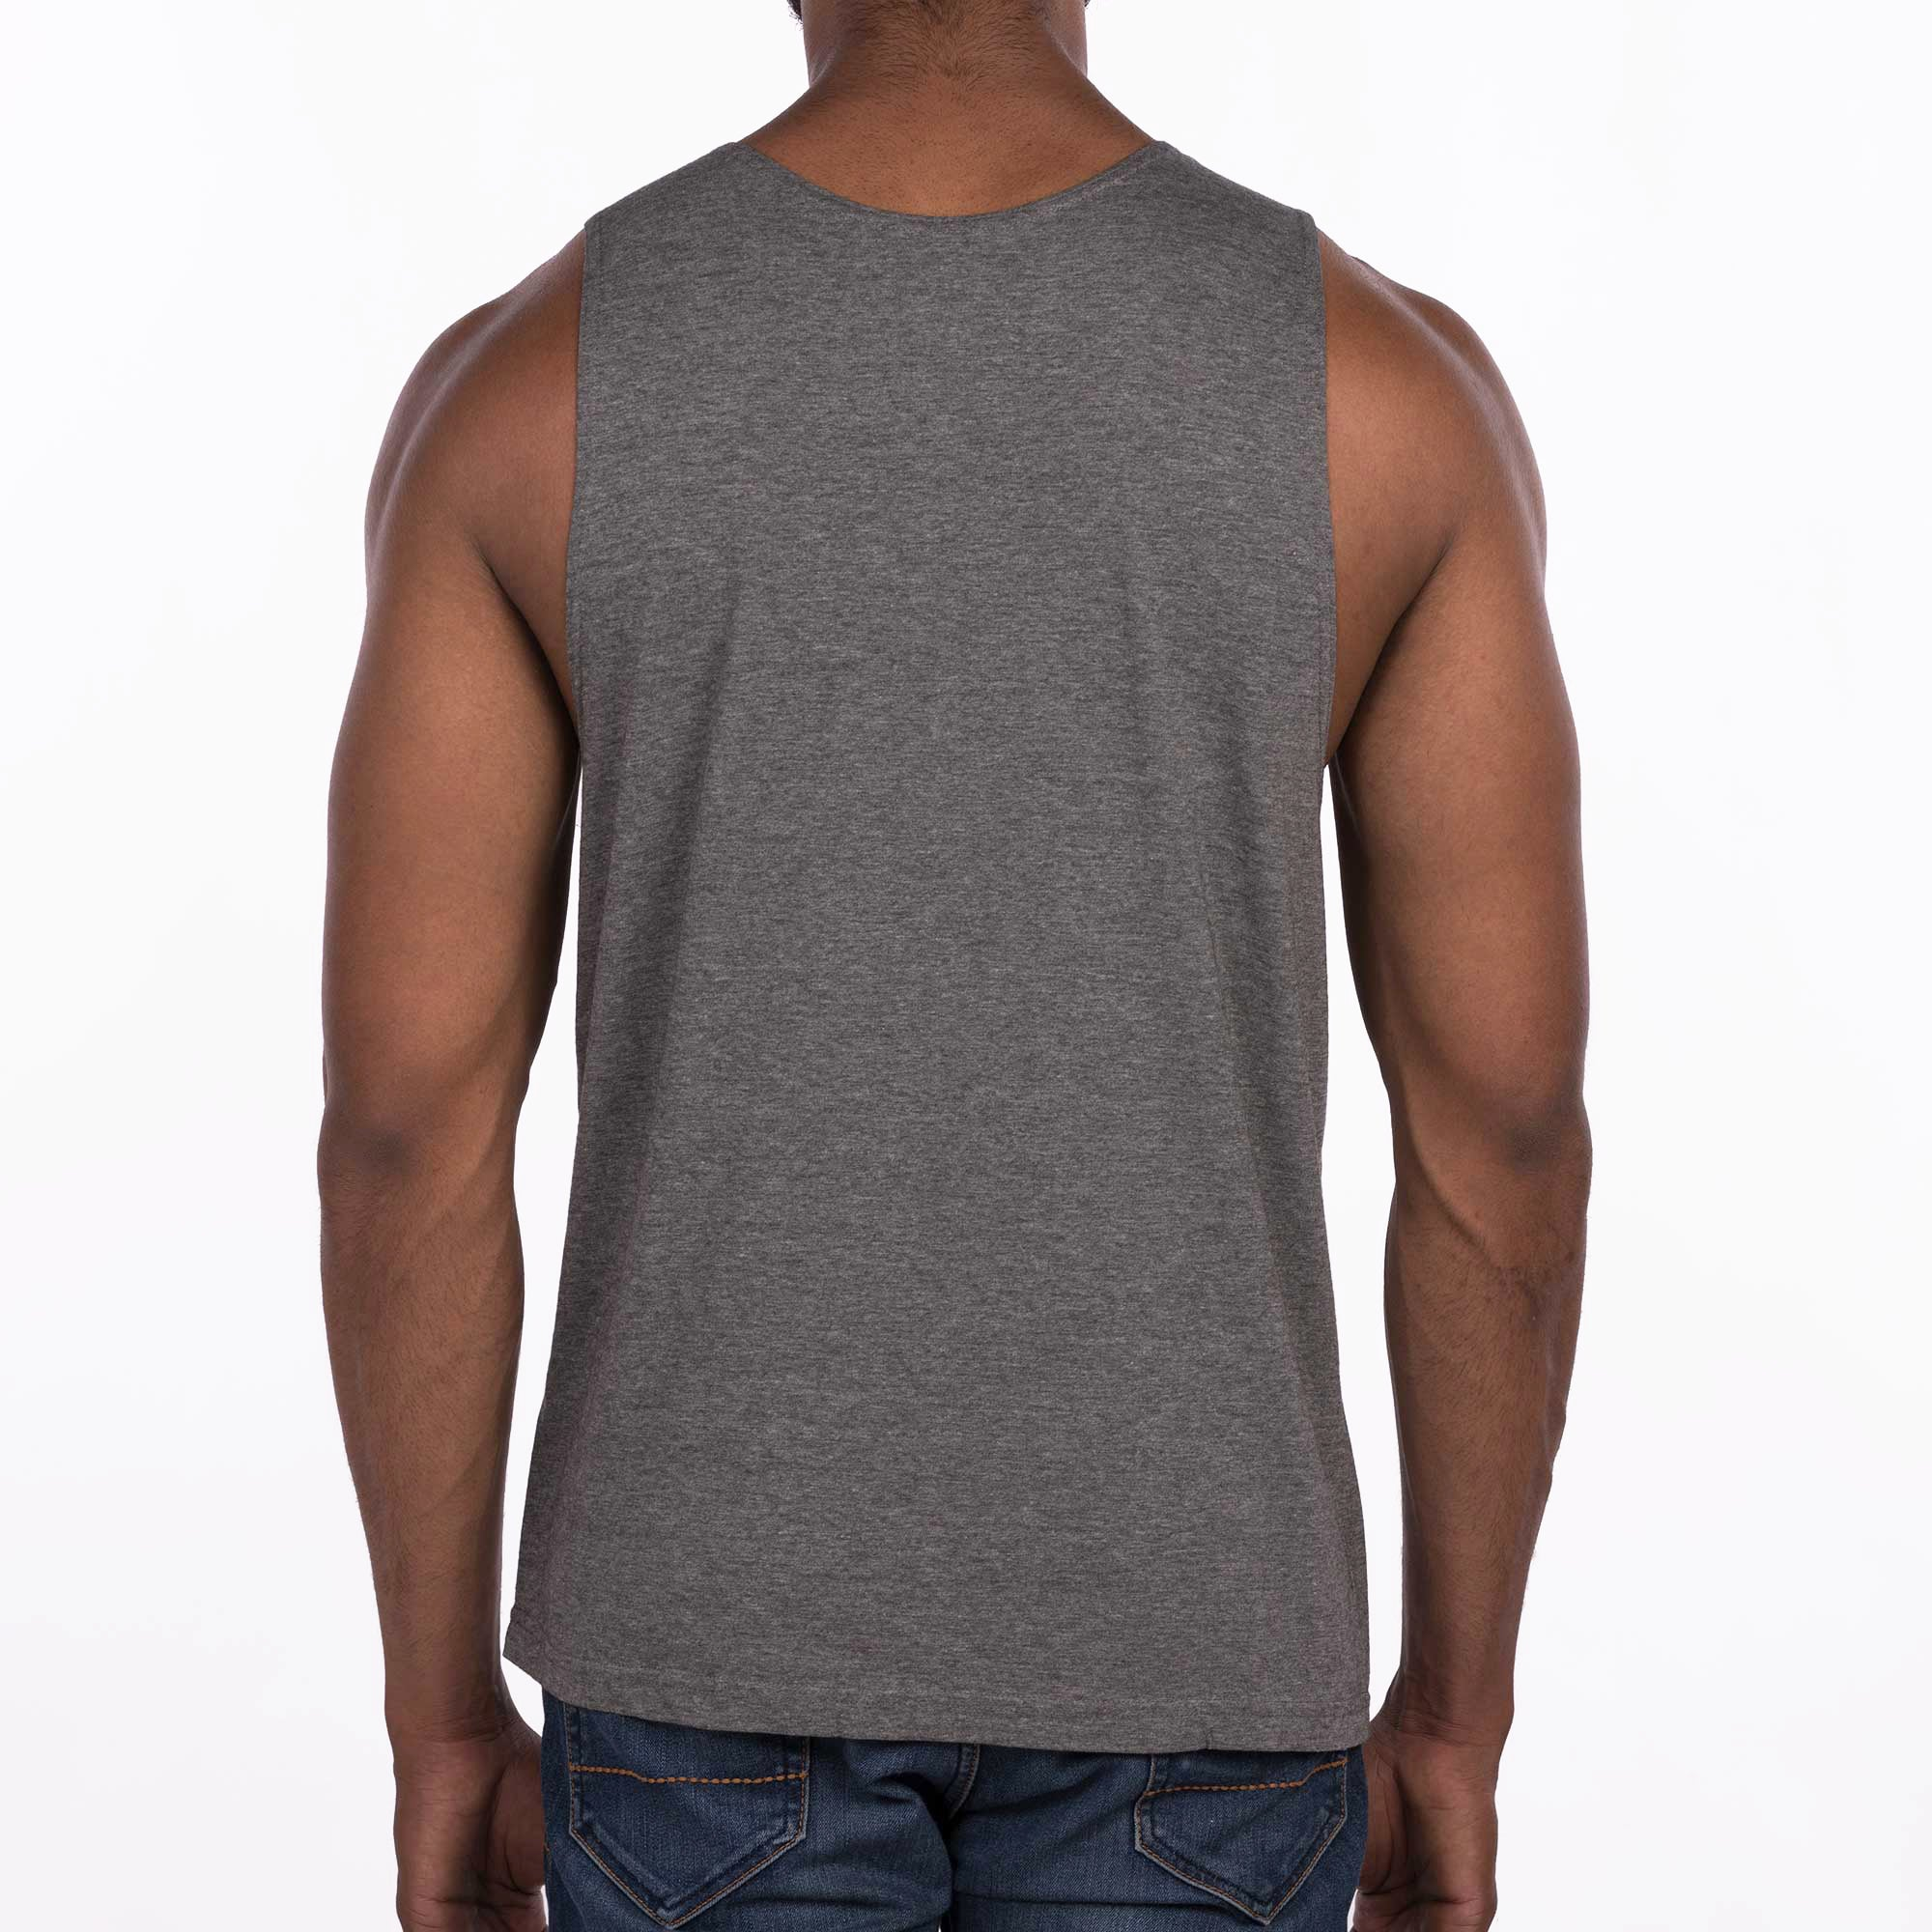 DB101 Pocket Vest - Charcoal Melange